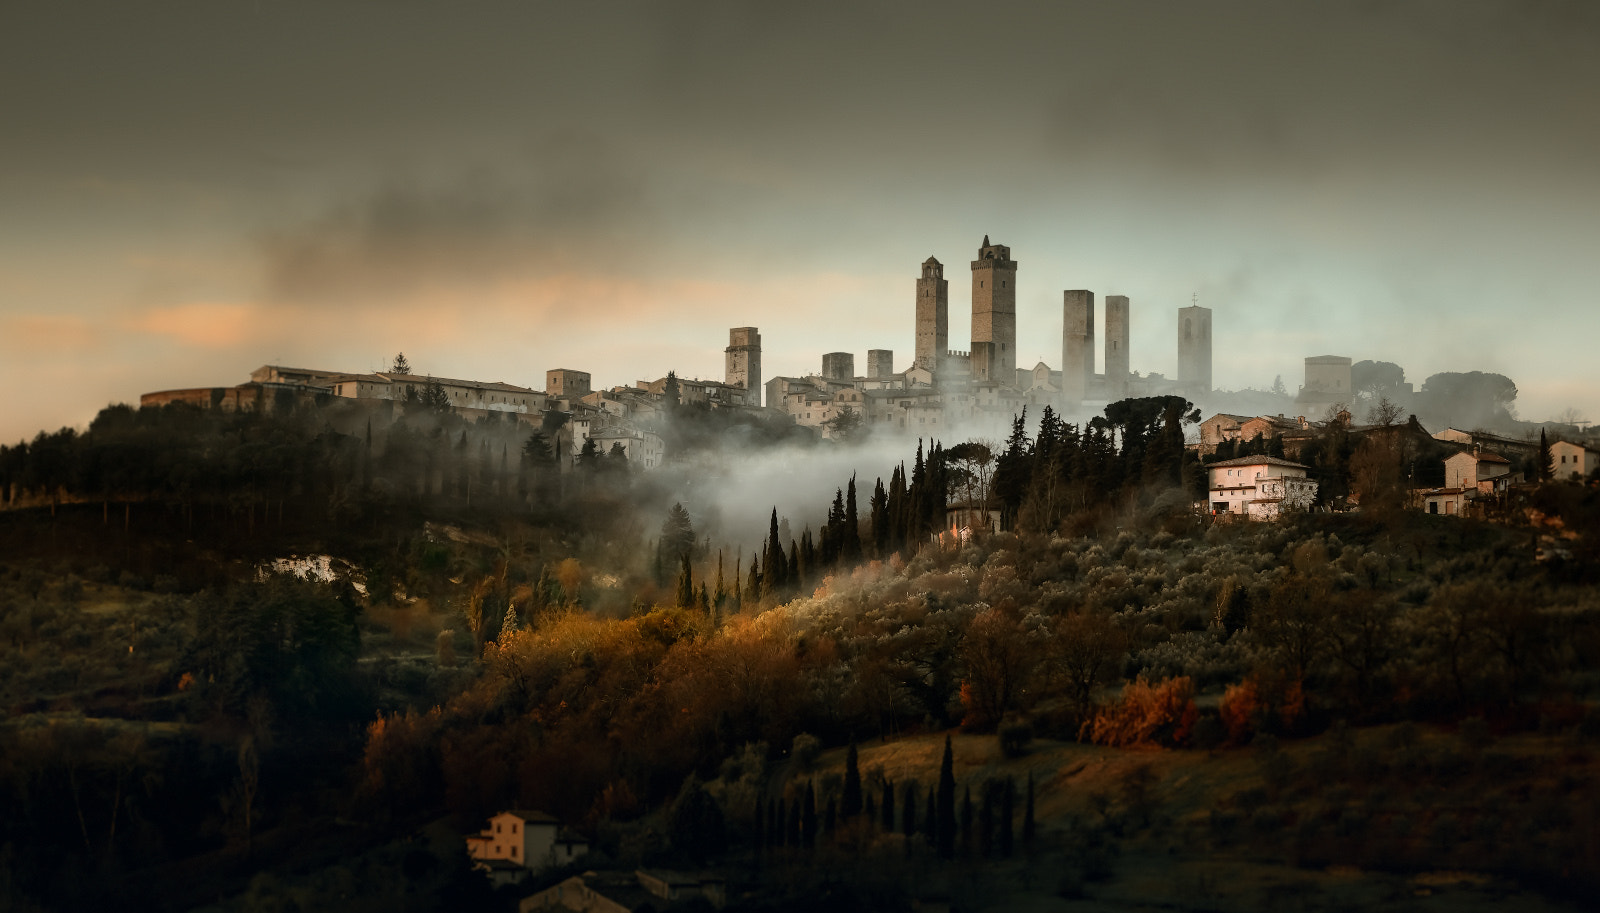 Photograph San Gimignano view by Alexander Gutkin on 500px